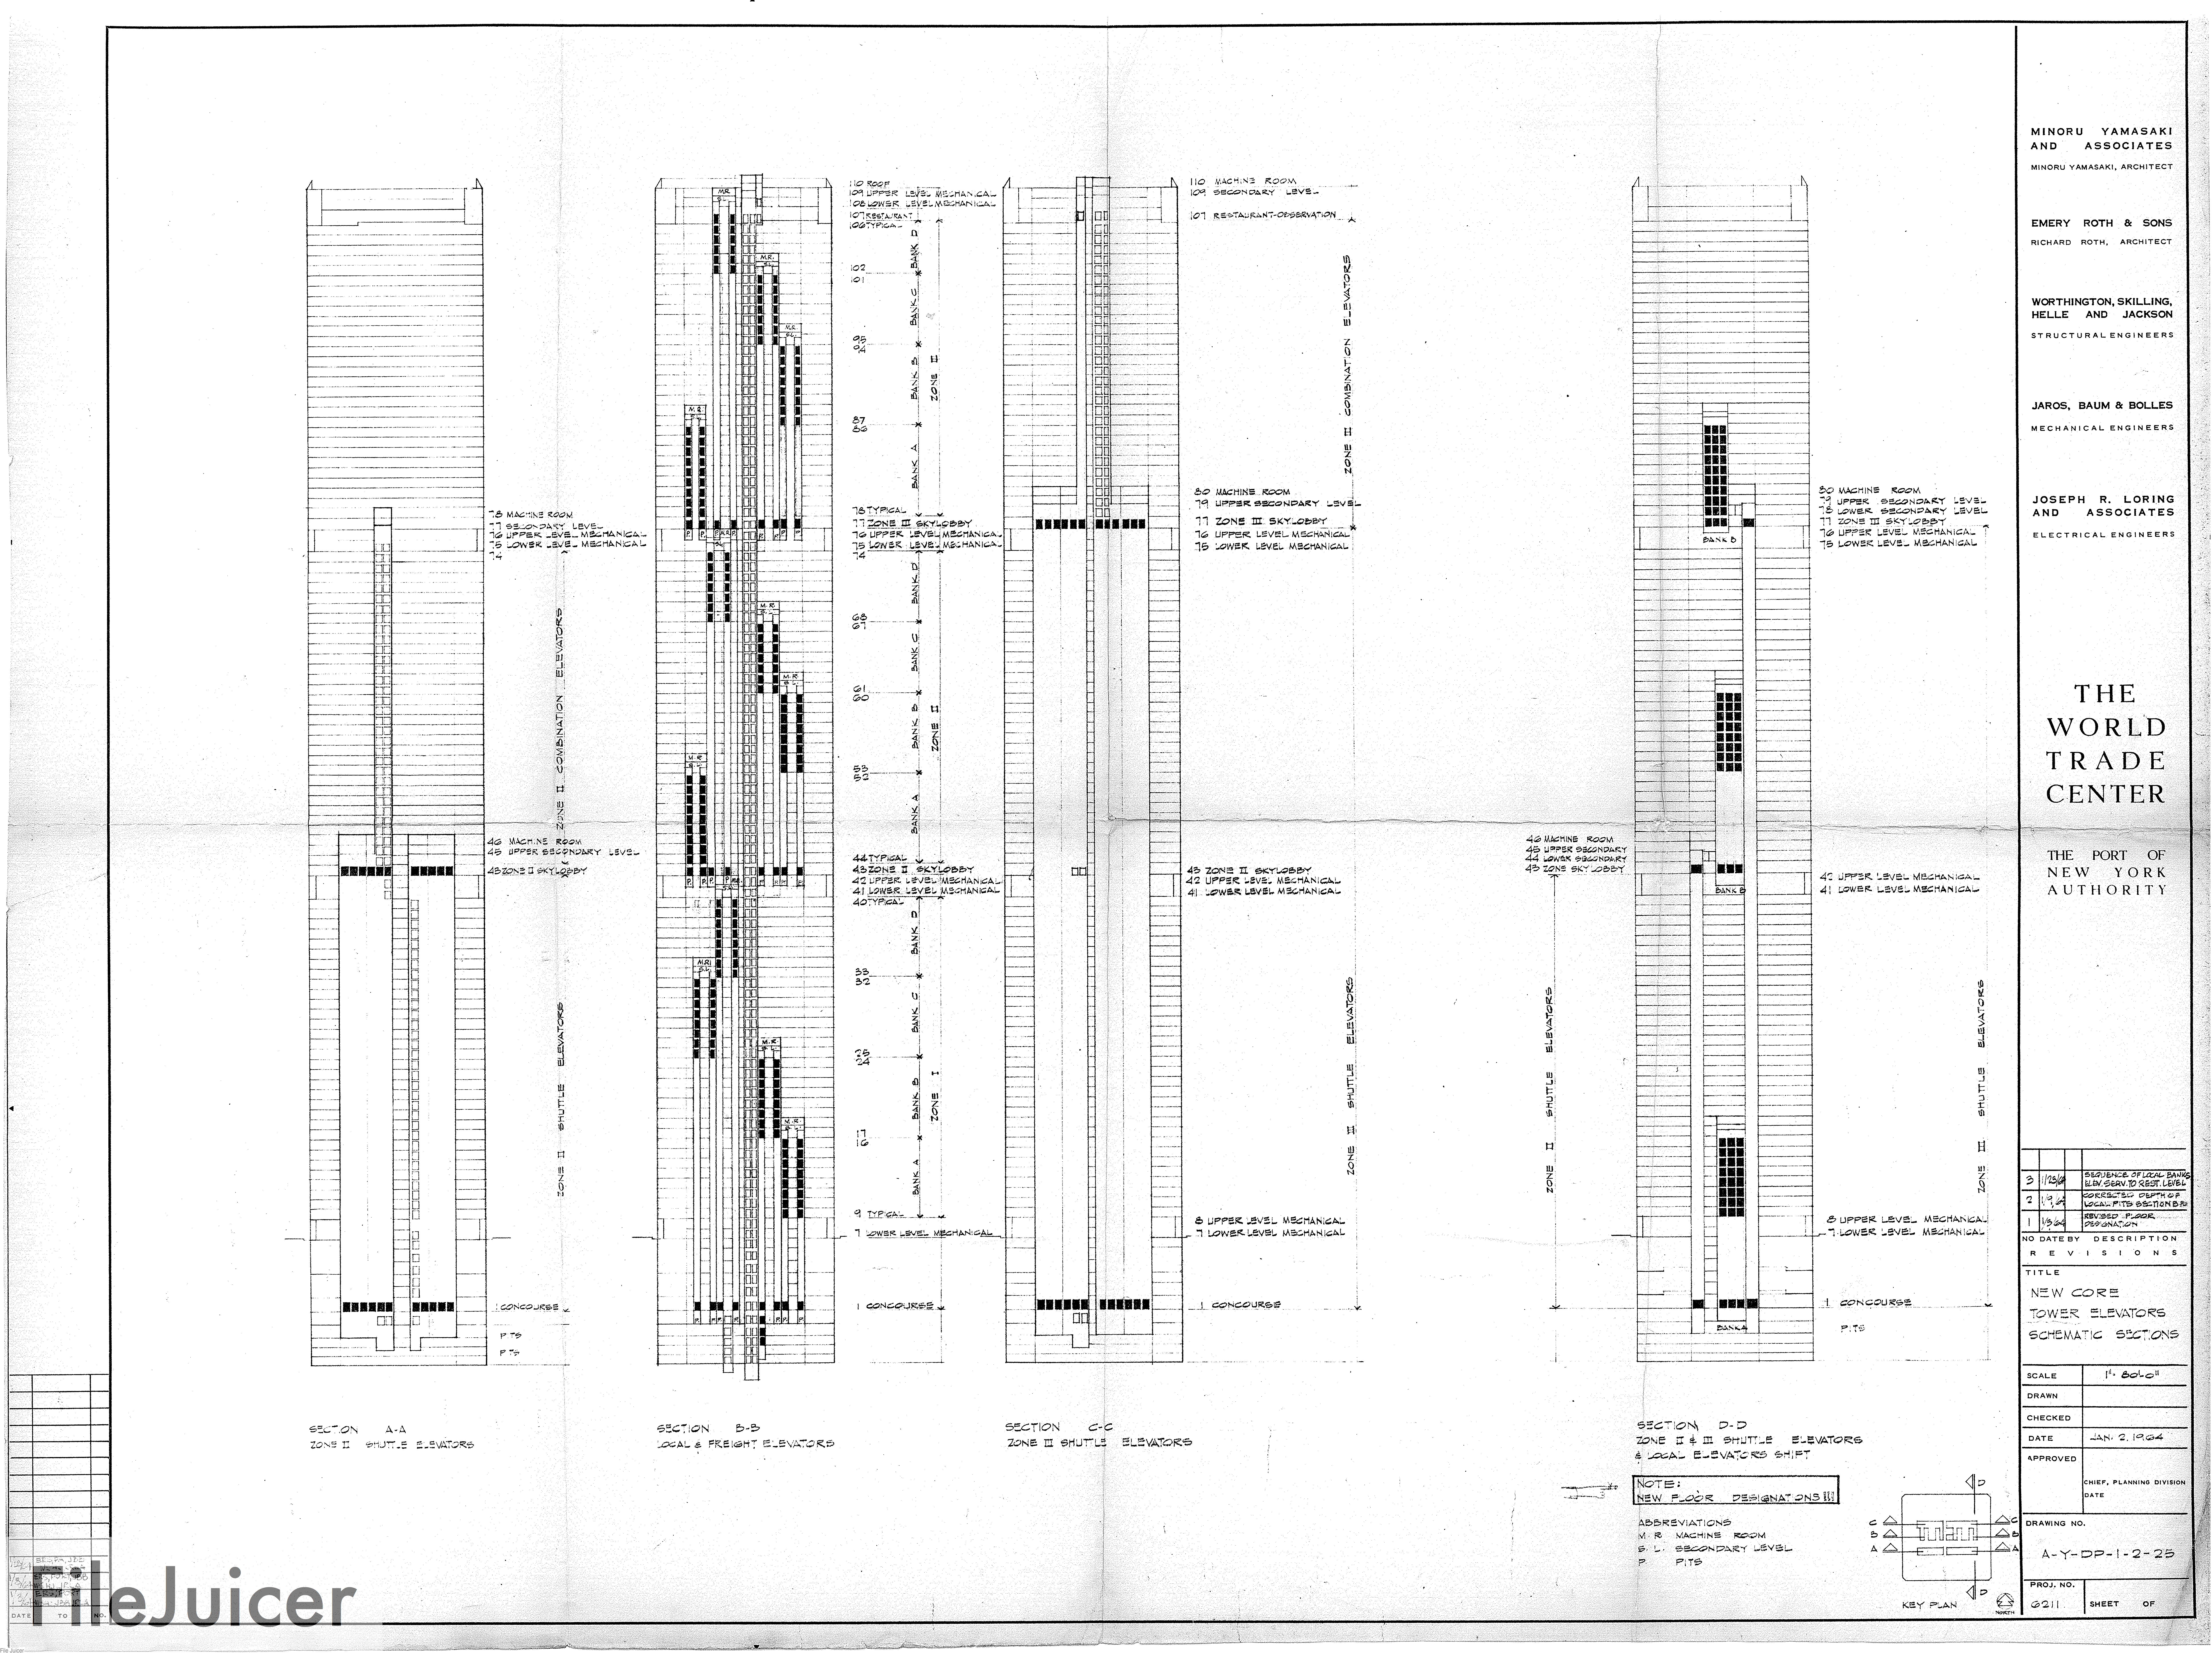 north tower blueprints rh www2 ae911truth org diagram of world trade center buildings